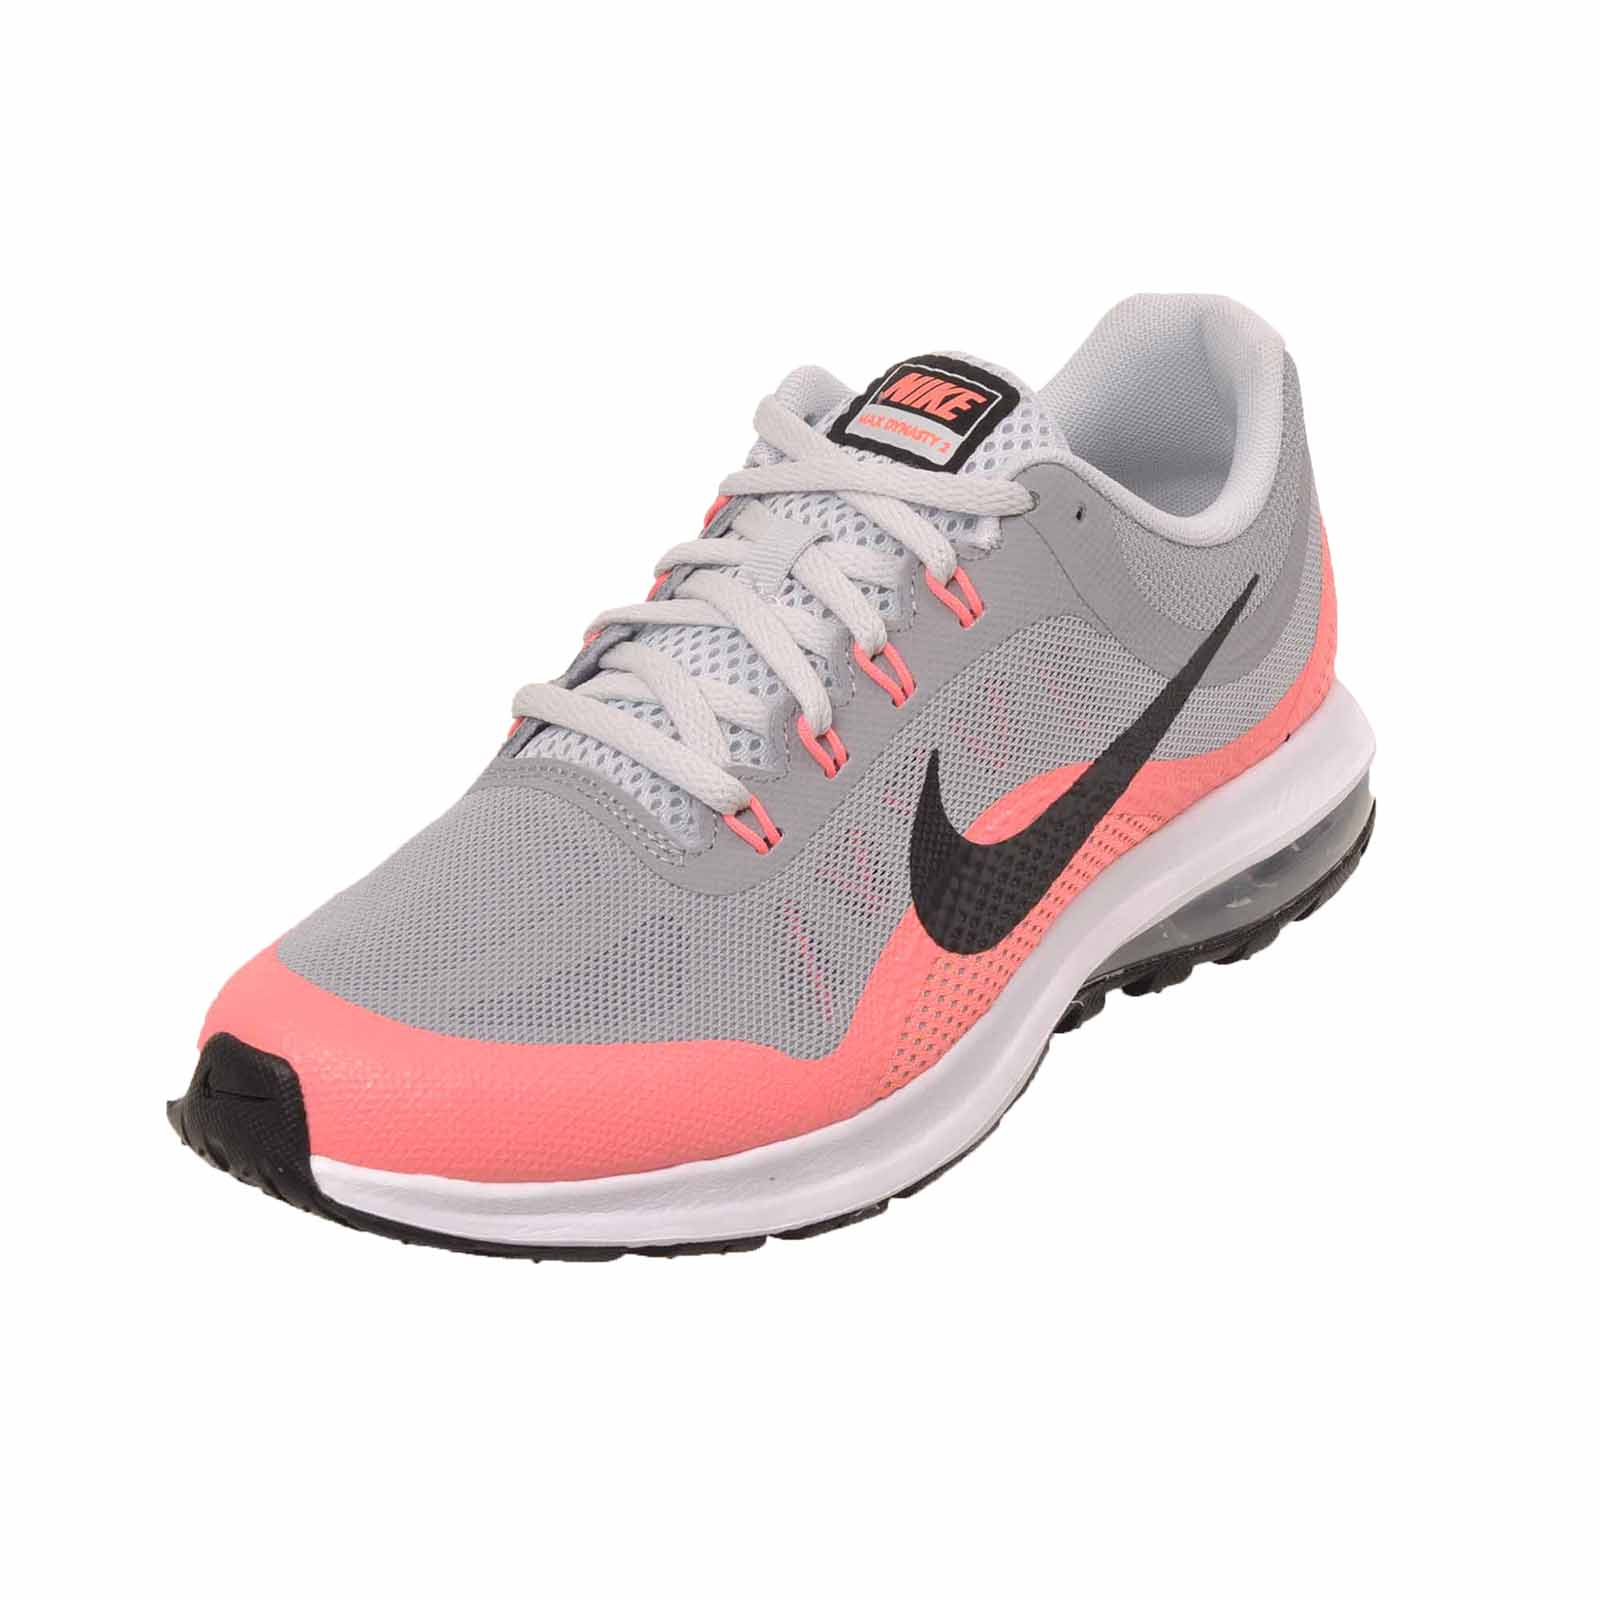 Details about Nike Air Max Dynasty 2 GS Running Kids Youth Shoes Grey 859577 003